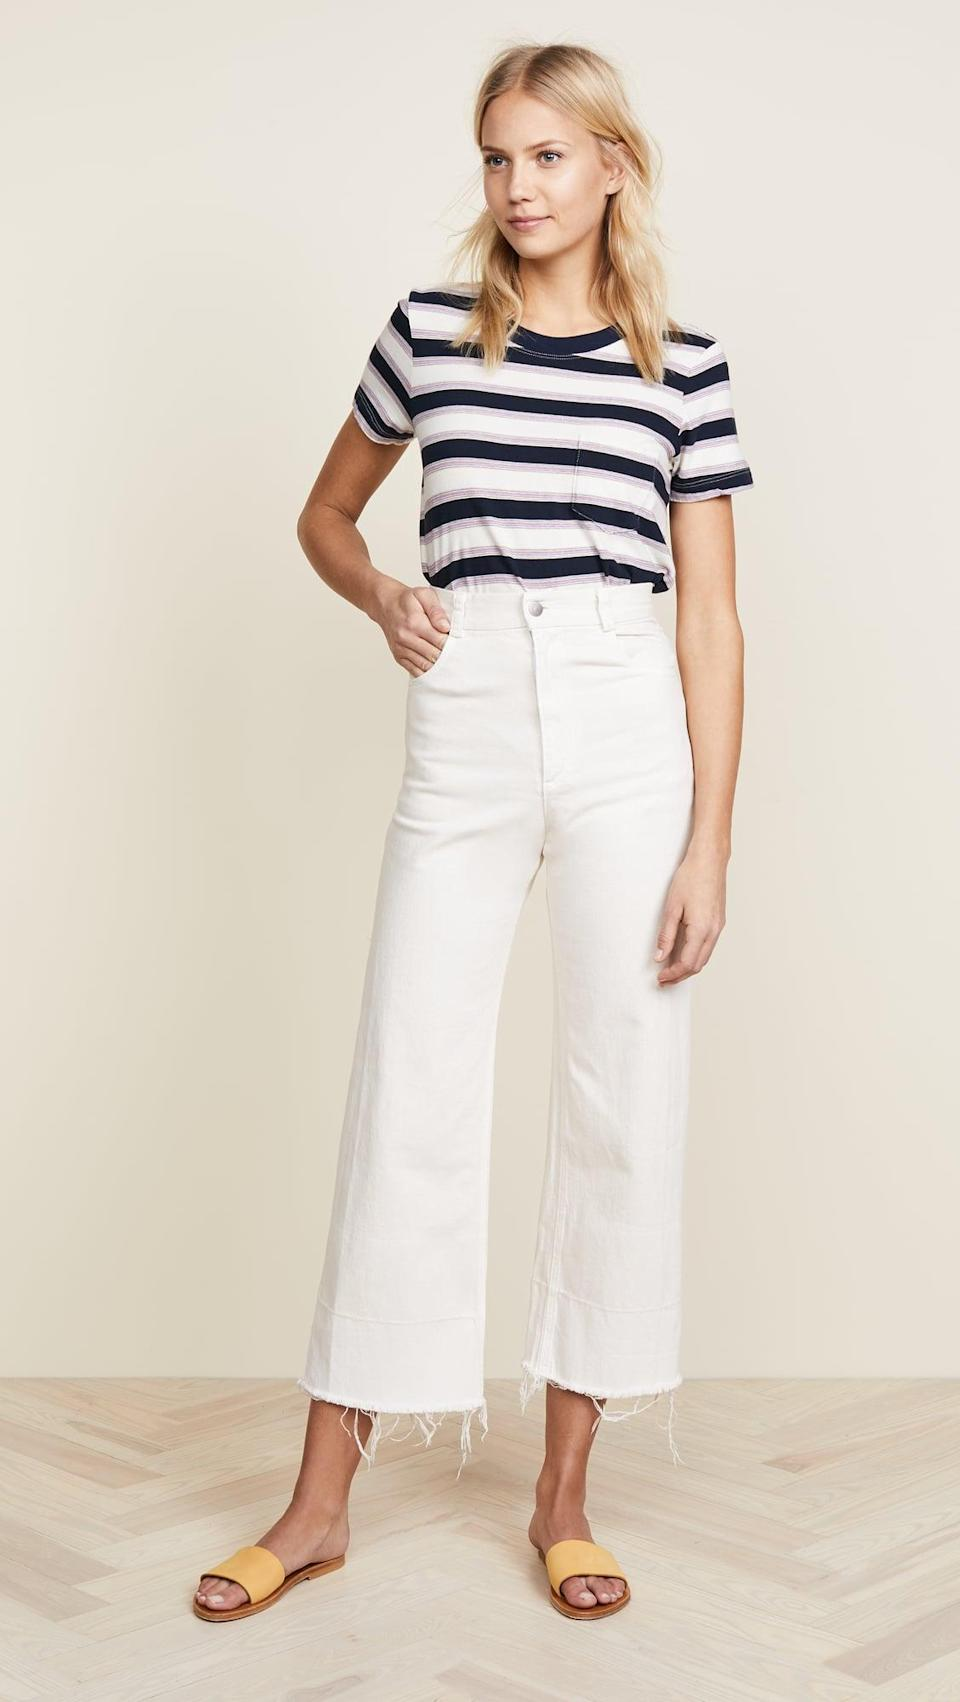 <p>The <span>Rachel Comey Legion Jeans</span> ($345) are a bit of a splurge, but if you love a high-rise fit and the opportunity for a shoe moment, you'll get bang for your buck. Customers say they run slightly small but are very comfortable.</p>